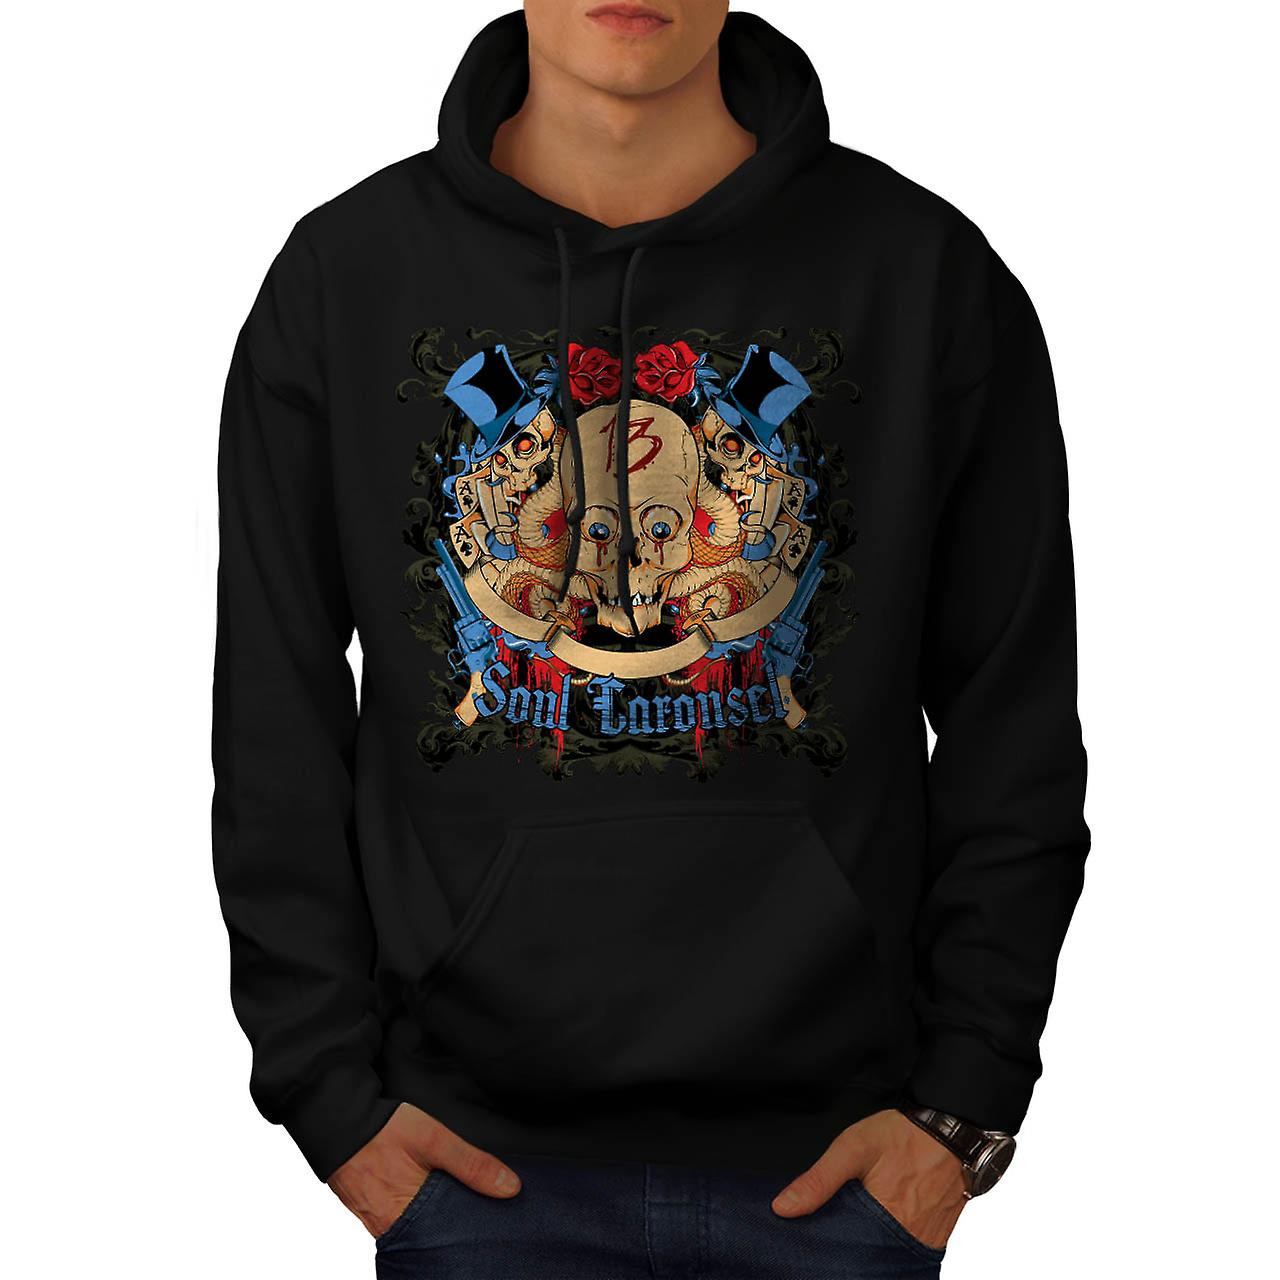 Soul Carousel Skull Terror Ride Men Black Hoodie | Wellcoda